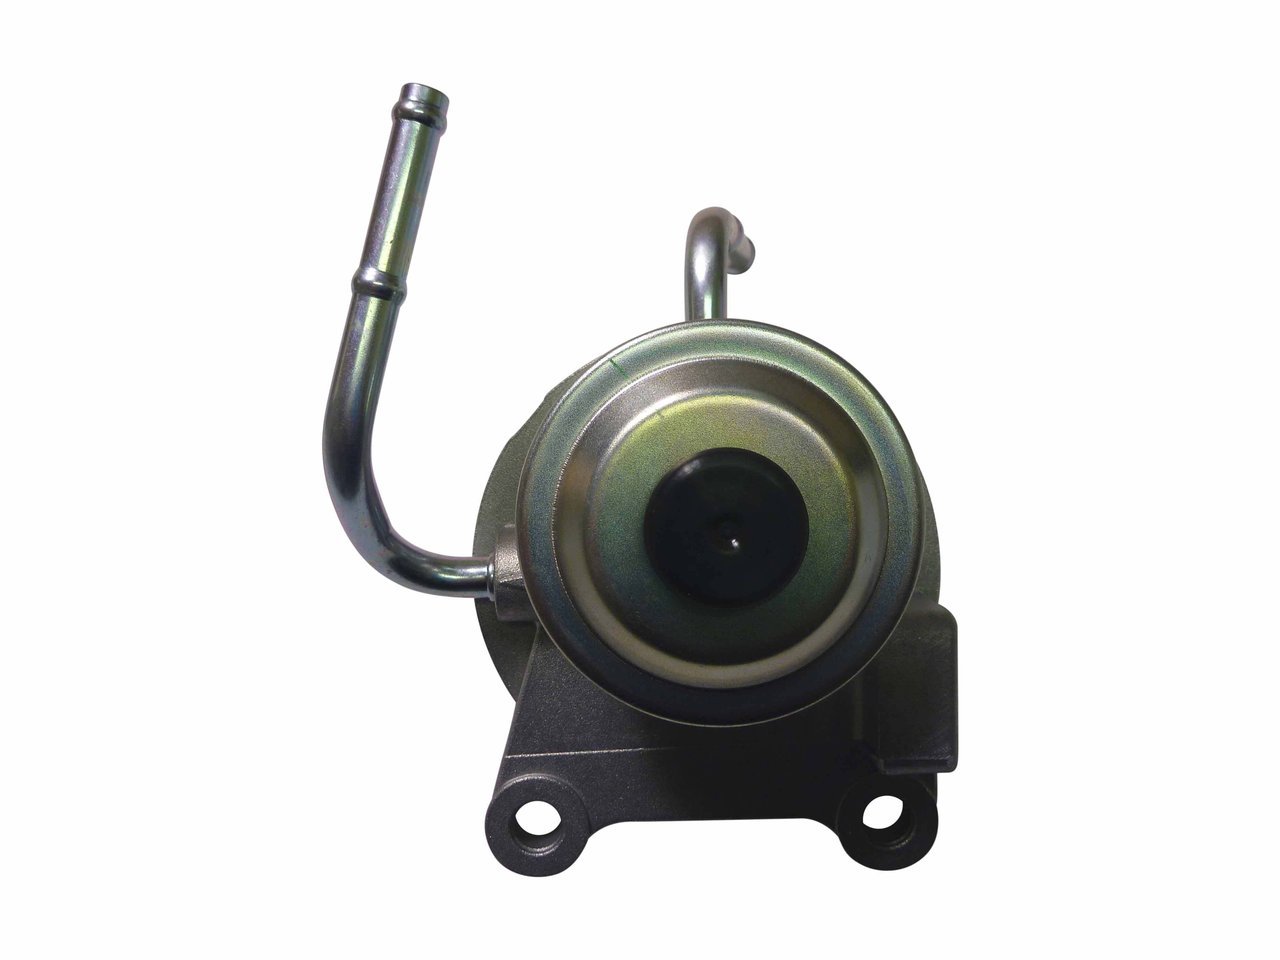 hight resolution of 1kz fuel pump diesel fuel filter cap with primer pump suitable for hilux